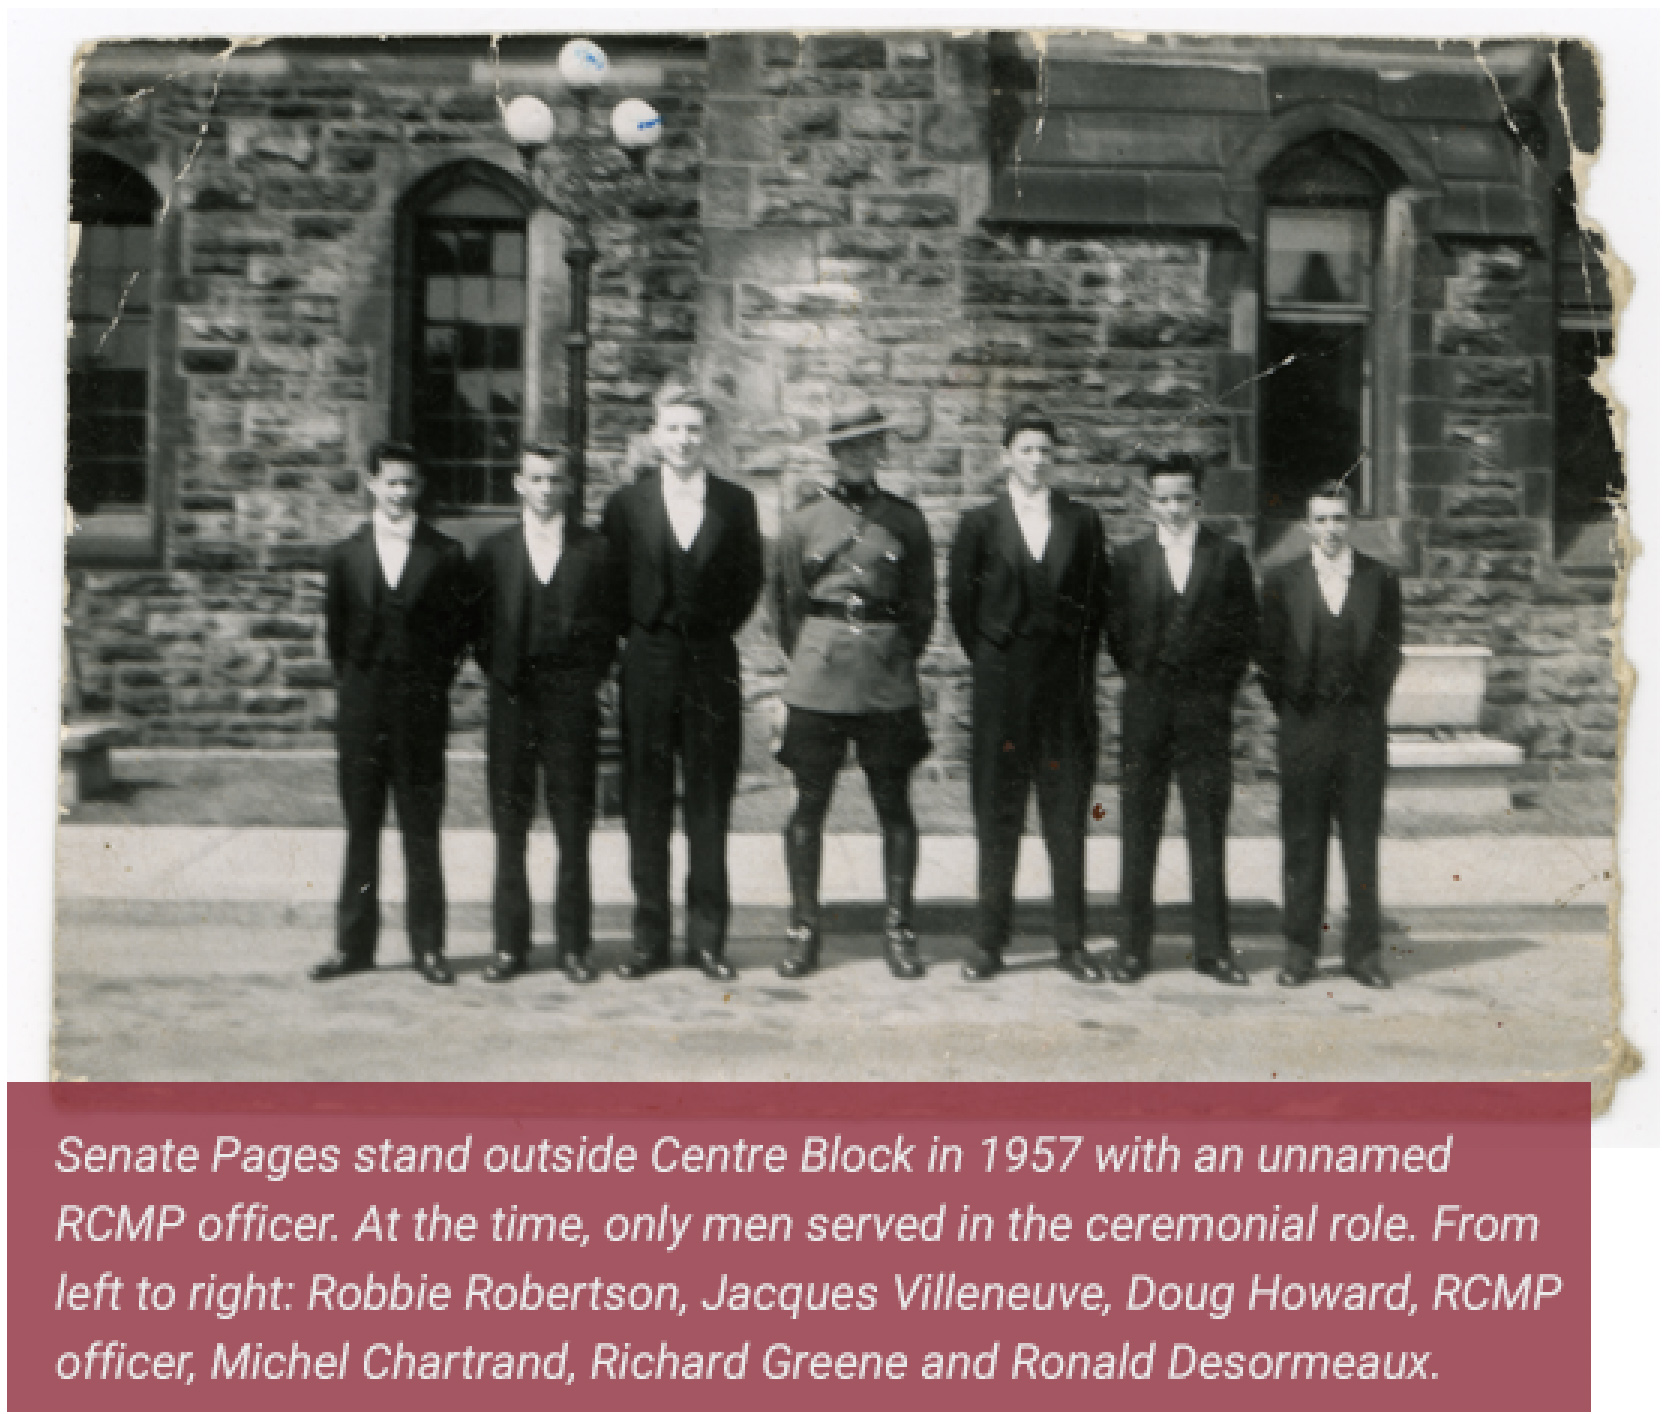 Senate Pages stand outside Centre Block in 1957 with an unnamed RCMP officer. At the time, only men served in the ceremonial role. From left to right: Robbie Robertson, Jacques Villeneuve, Doug Howard, RCMP officer, Michel Chartrand, Richard Greene and Ronald Desormeaux.